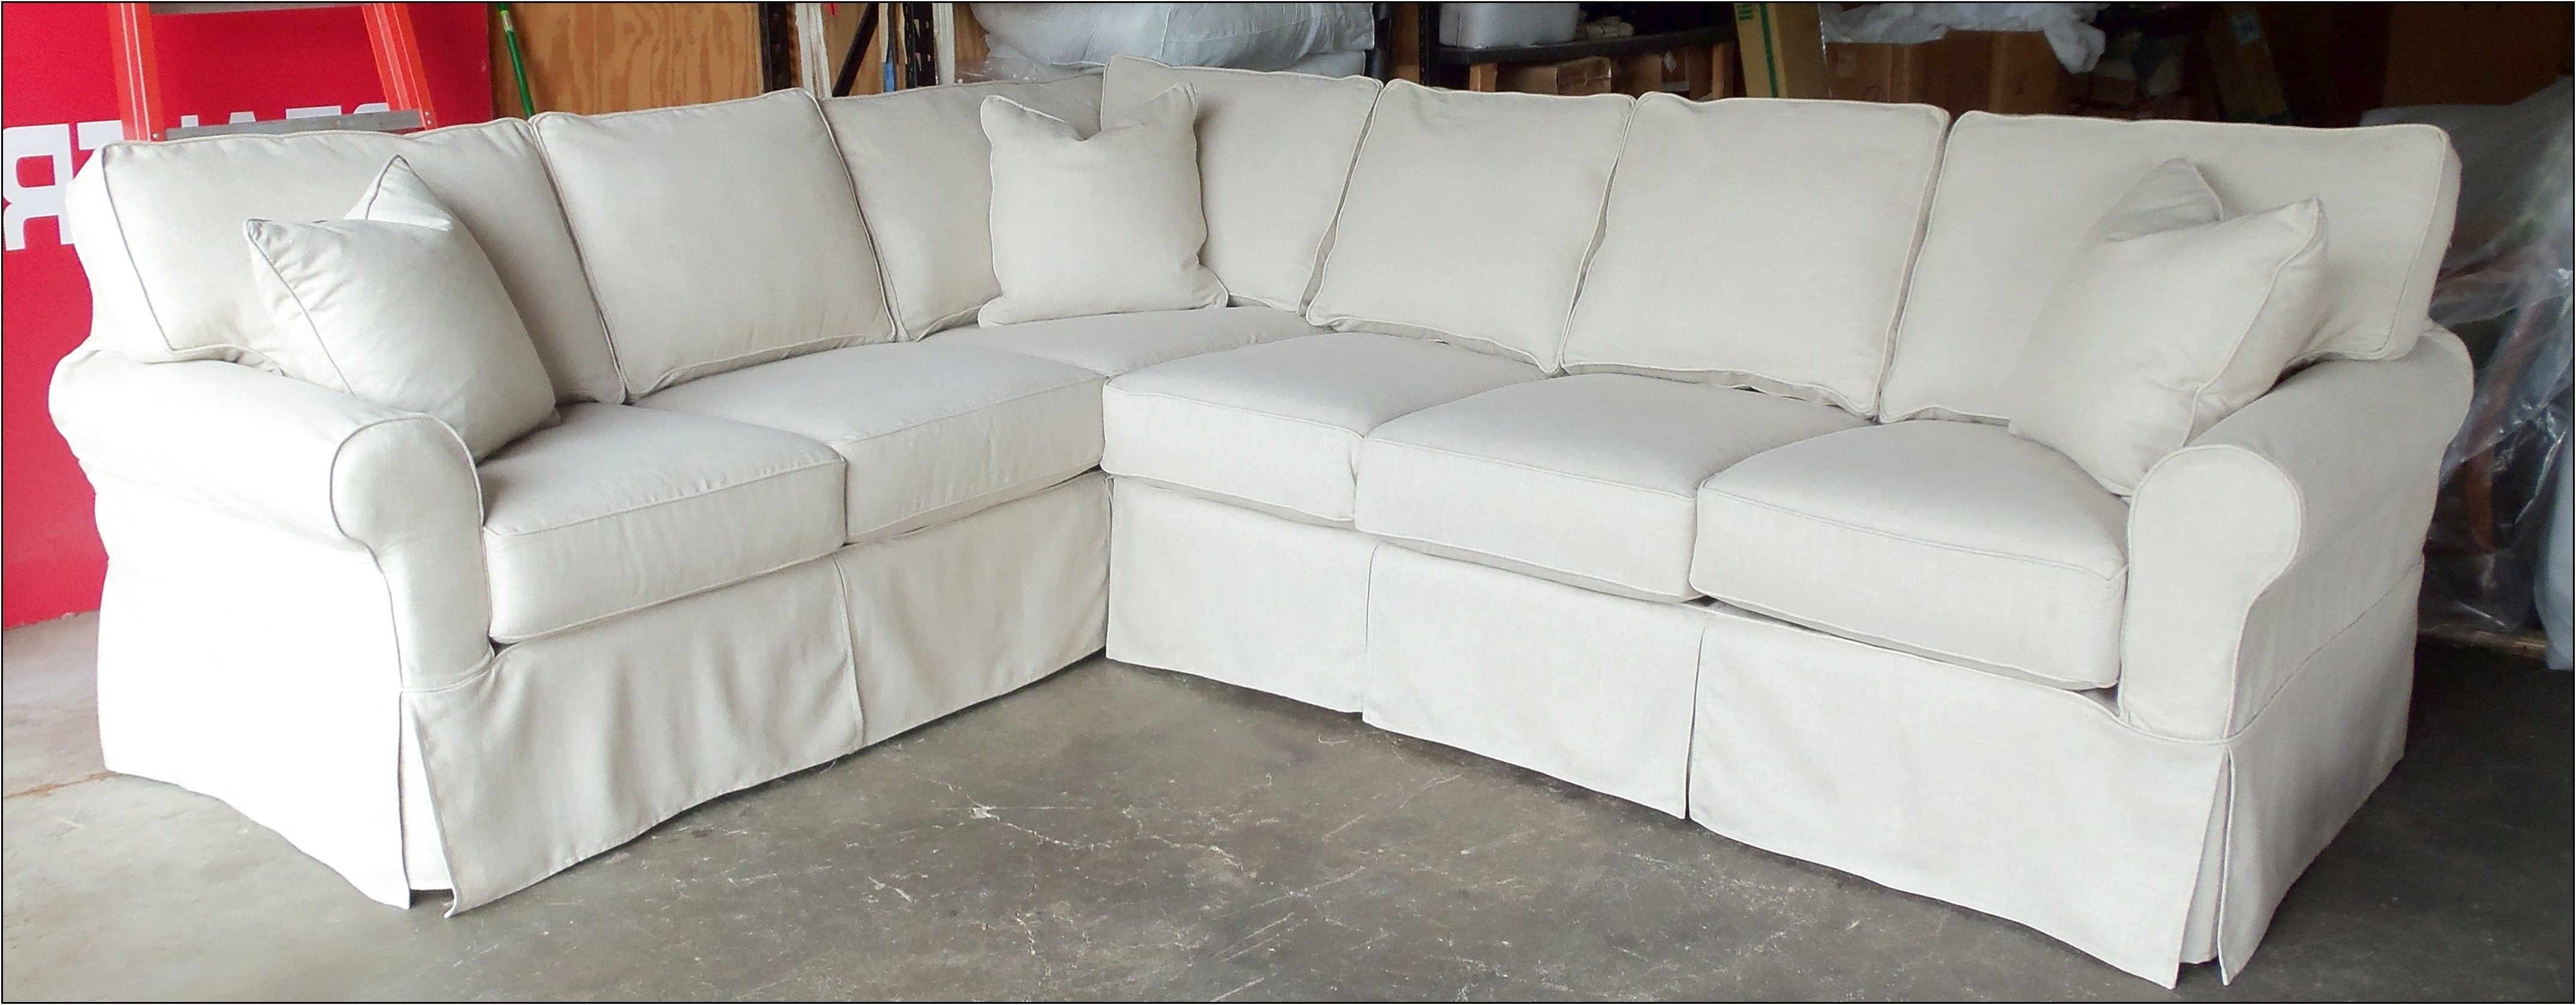 Sectional Sofas With Covers Intended For Most Up To Date Cool Sectional Couch Cover , Best Sectional Couch Cover 72 For (View 2 of 20)